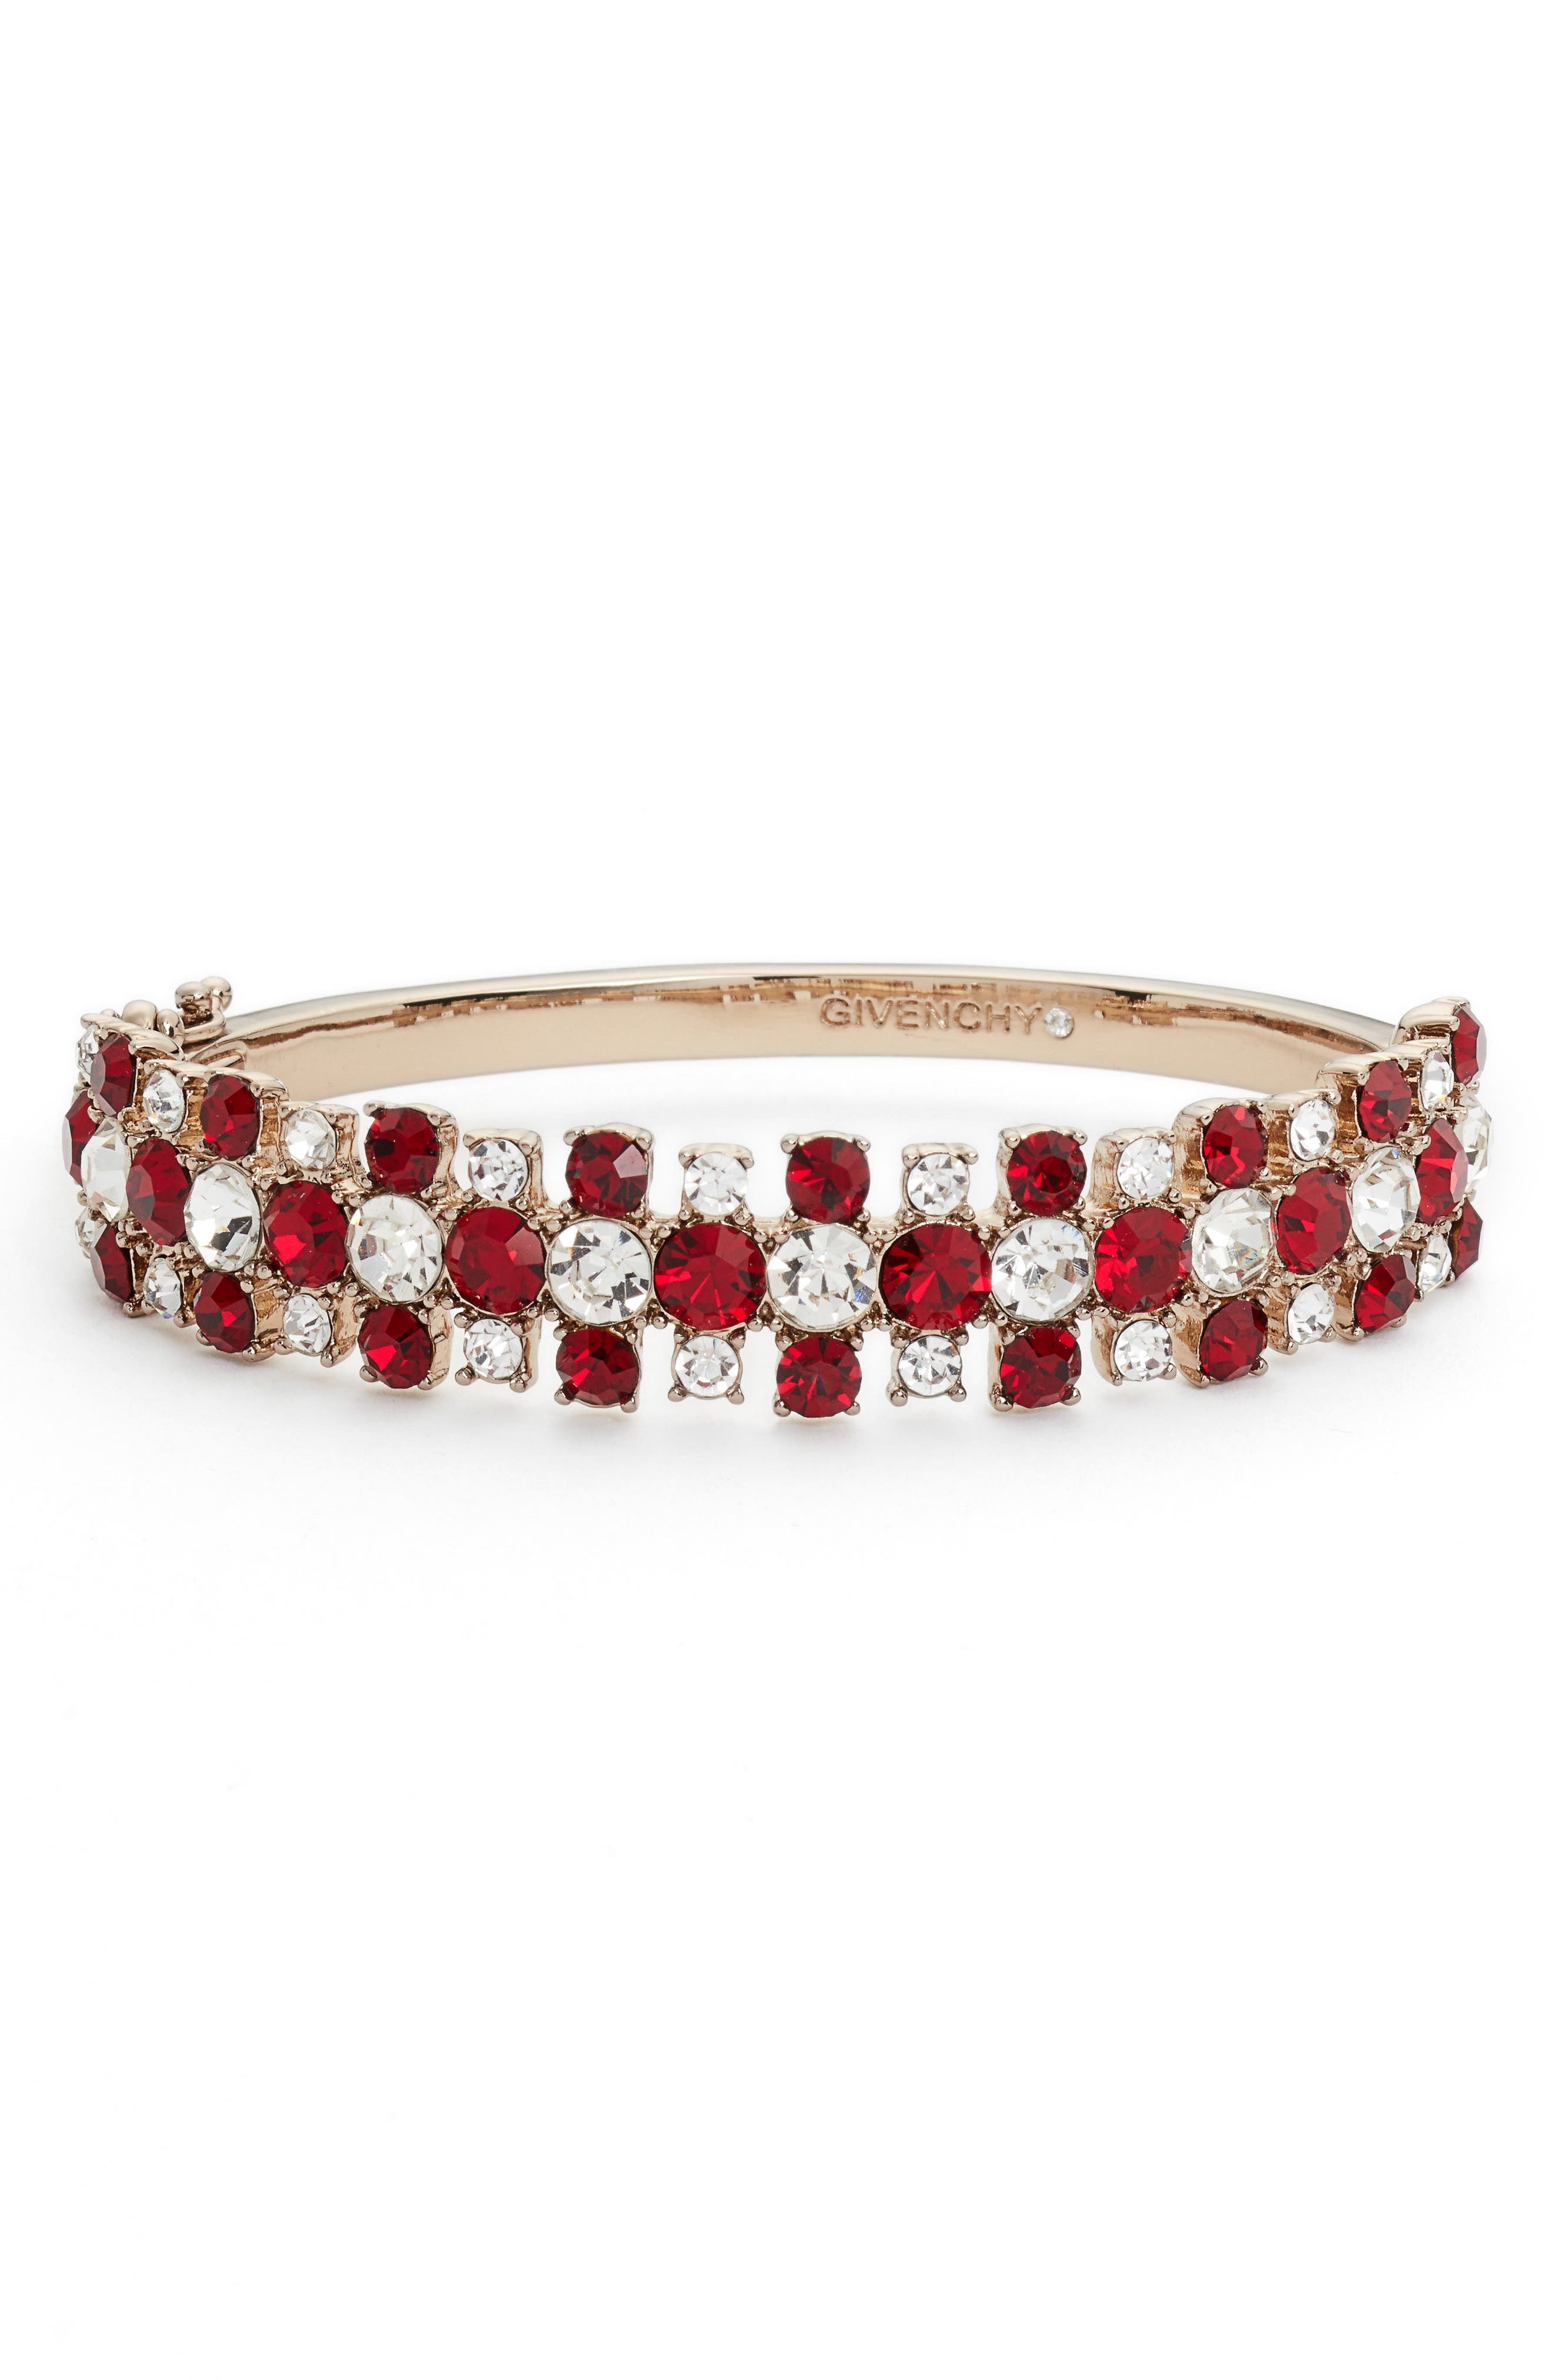 Crystal Bangle Bracelet,                             Main thumbnail 1, color,                             Red/ Gold